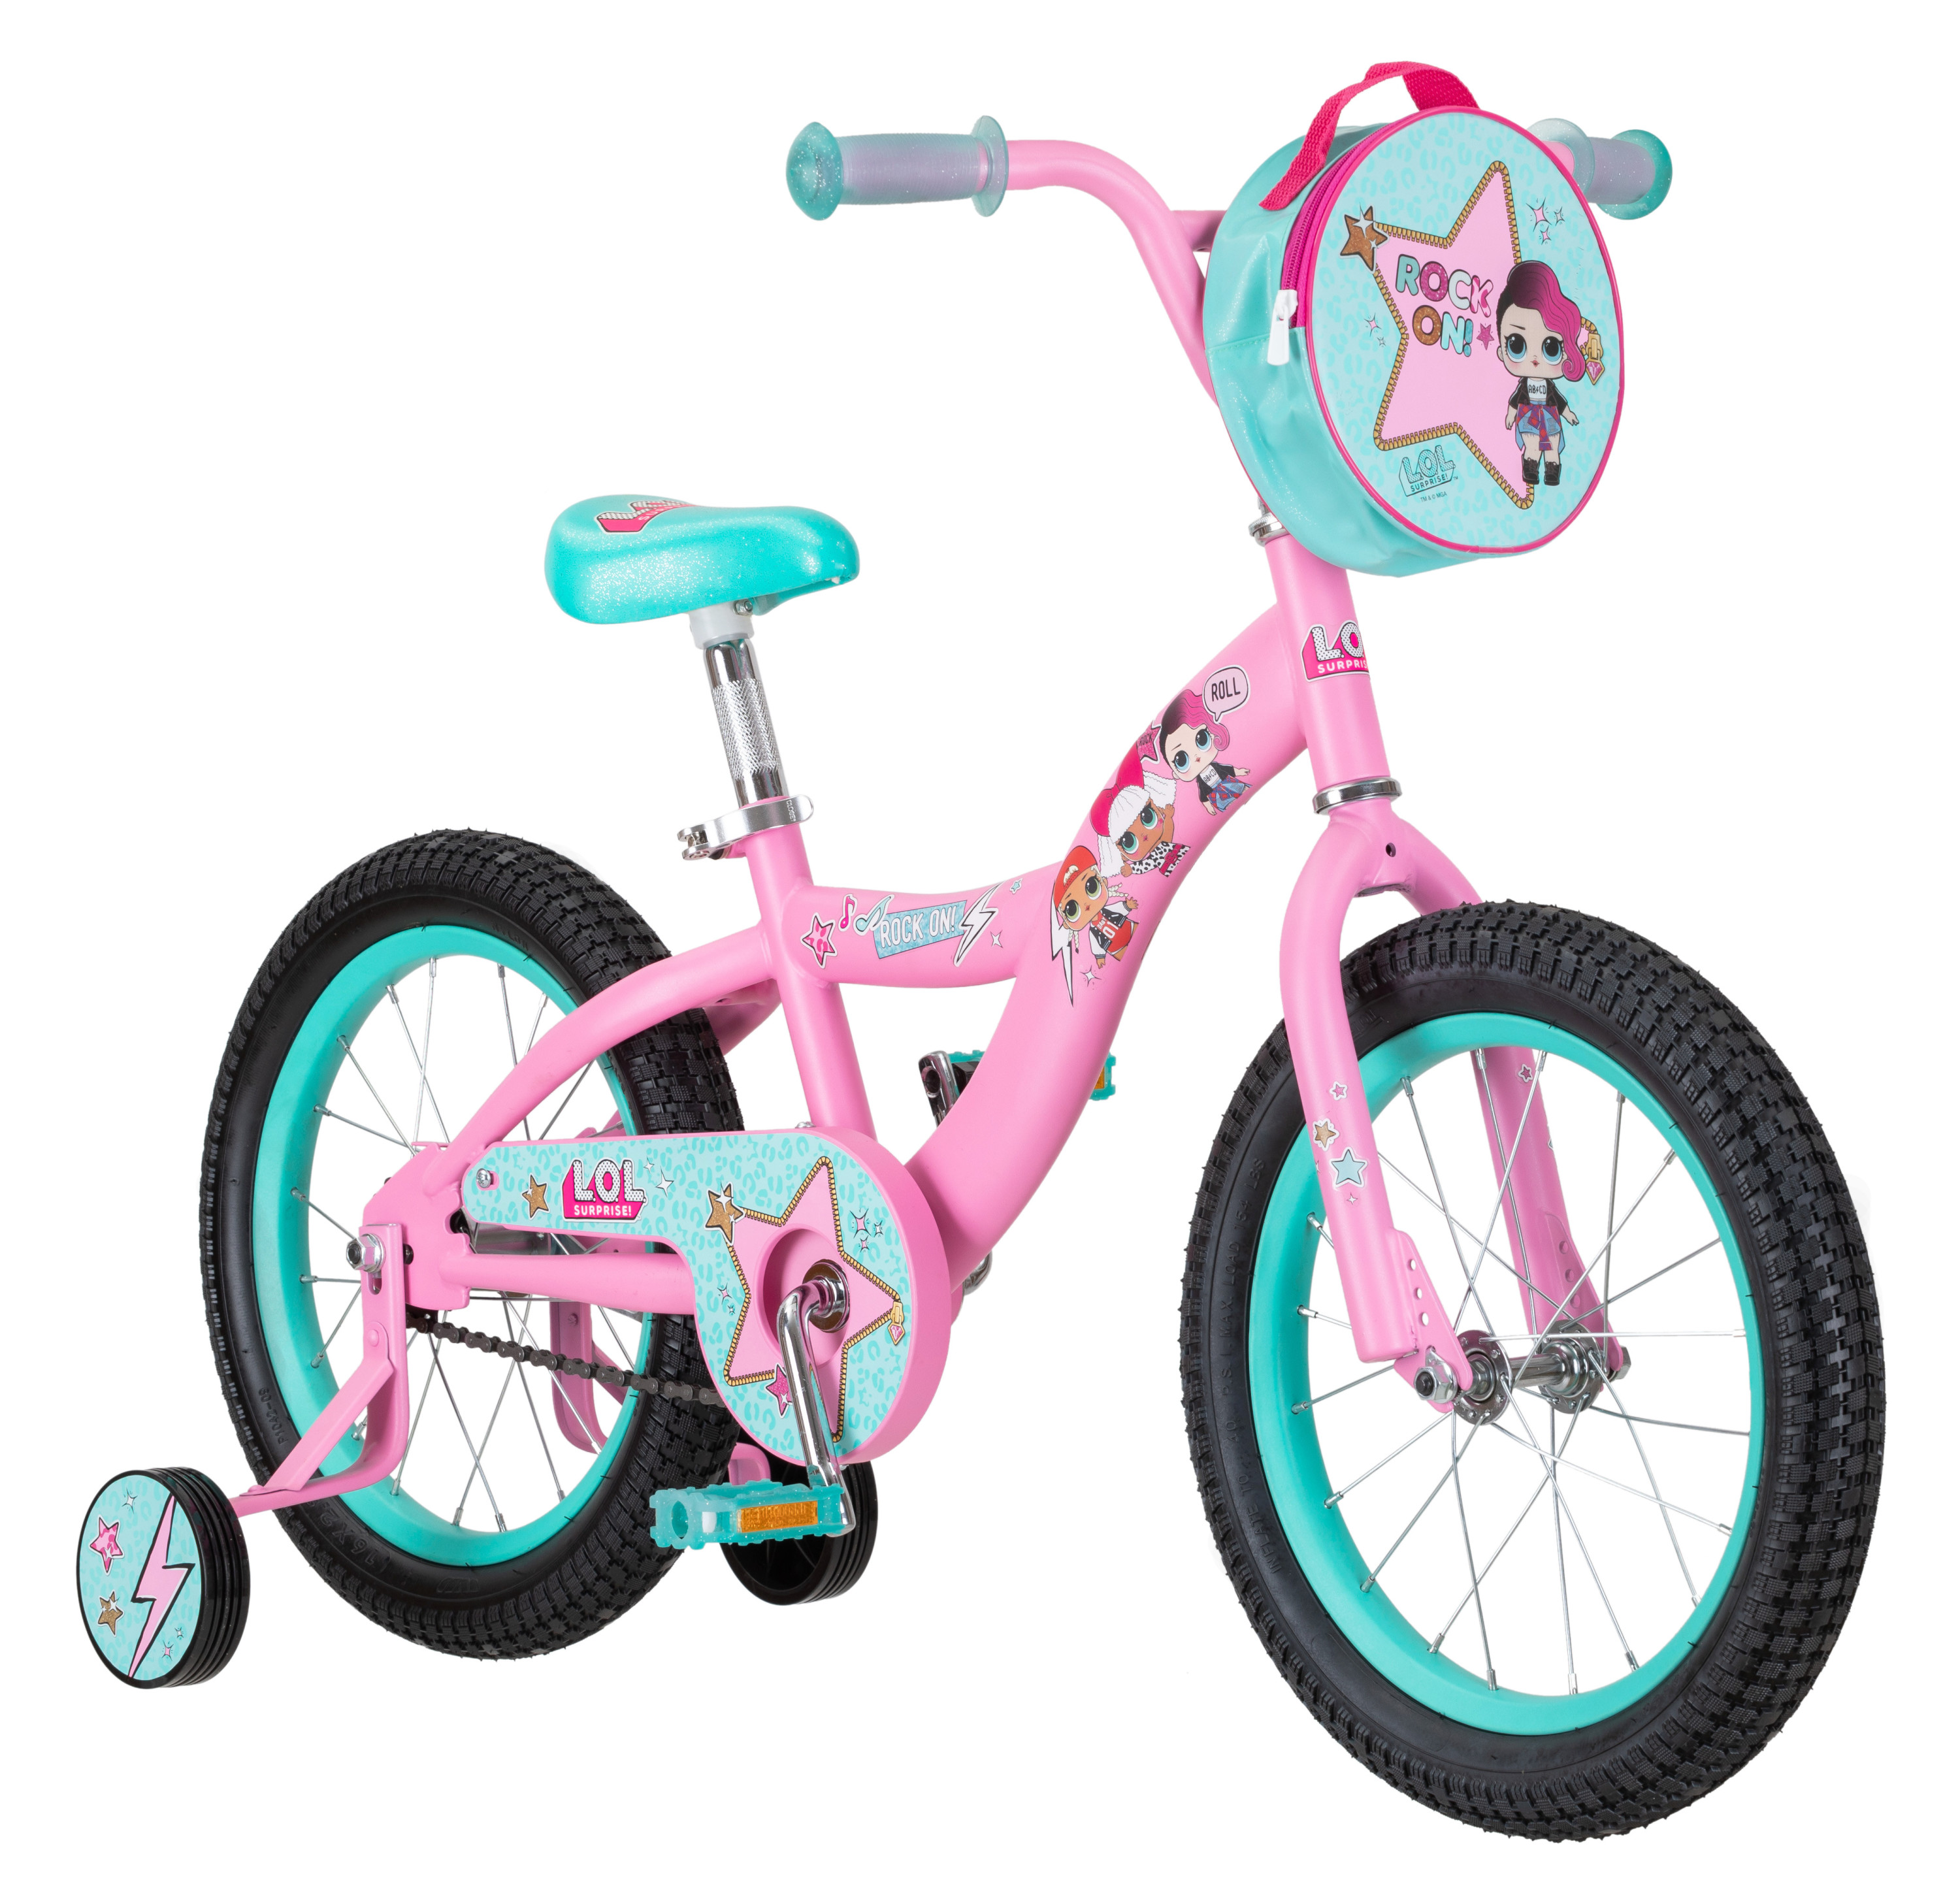 LOL Surprise kids bike, 16-inch wheel, Girls, Pink